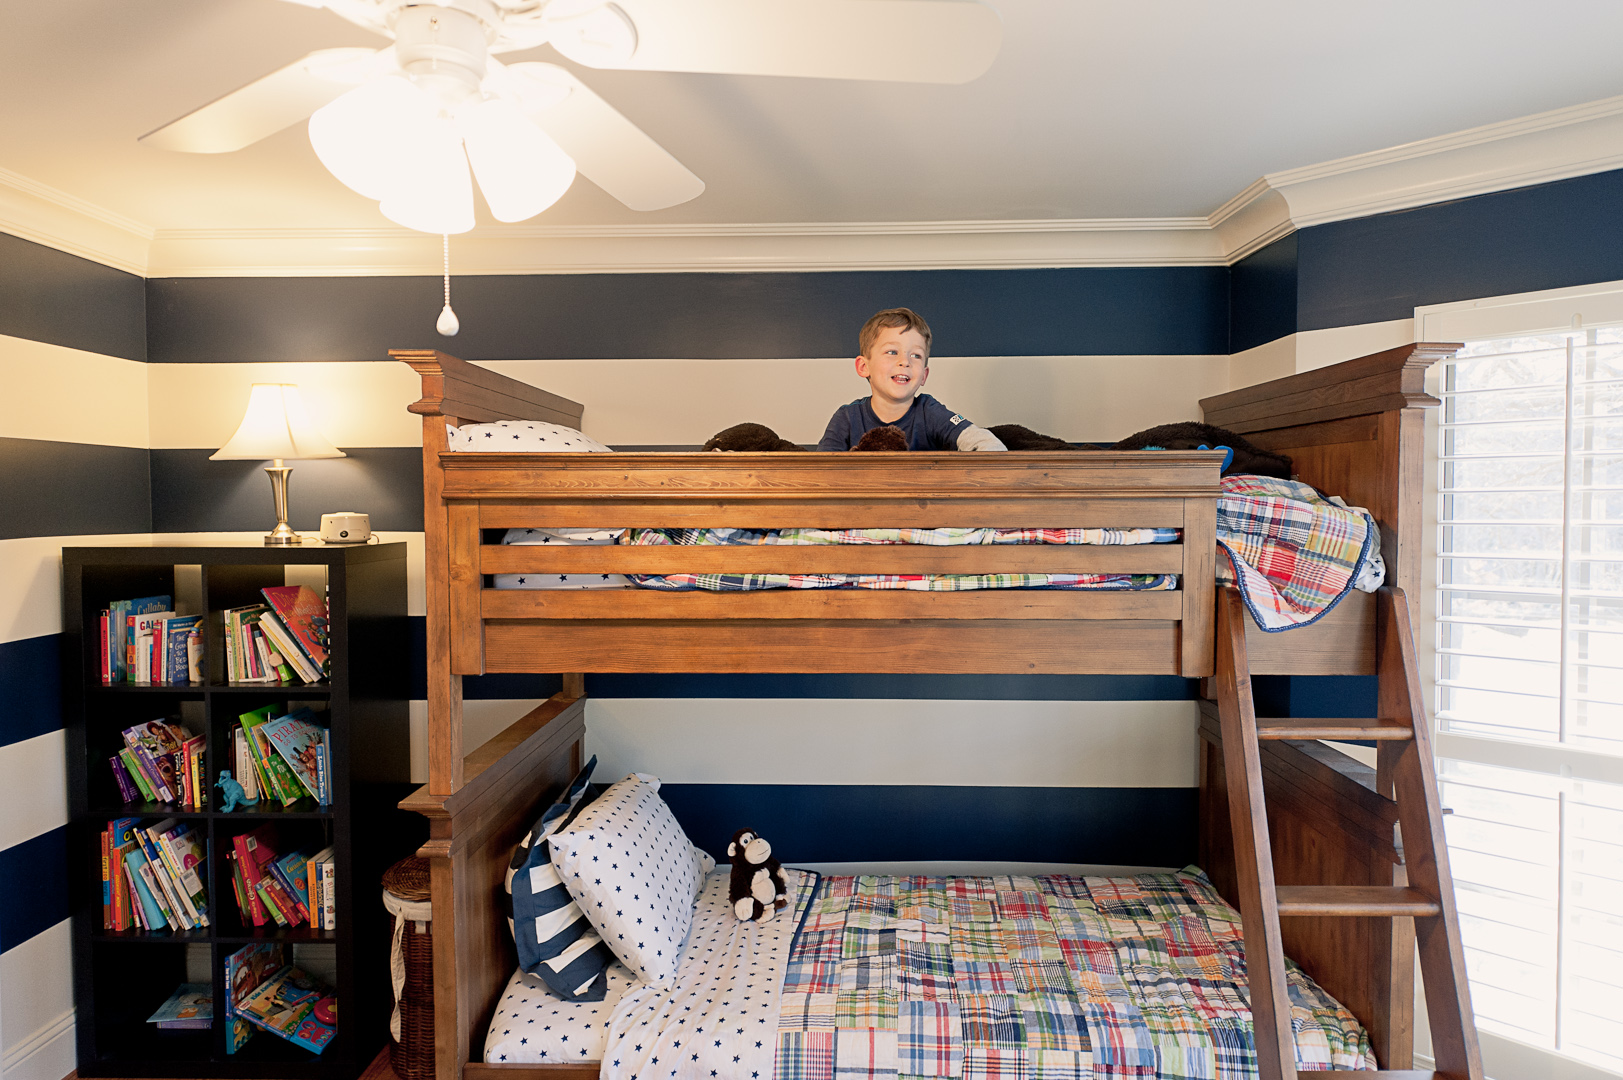 Can't believe he's old enough to sleep on the top bunk!